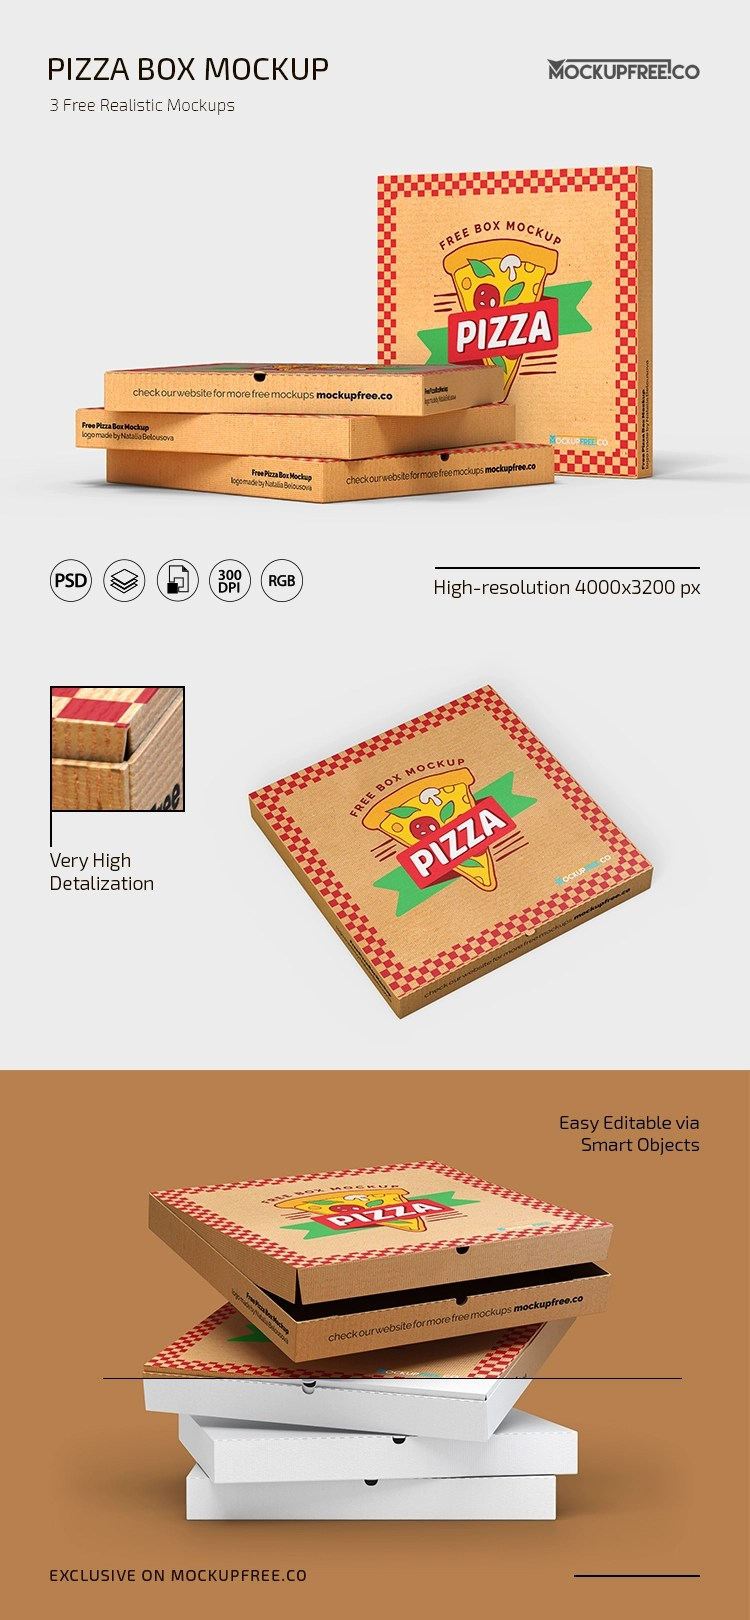 Download Free Pizza Box Mockup in PSD | Download